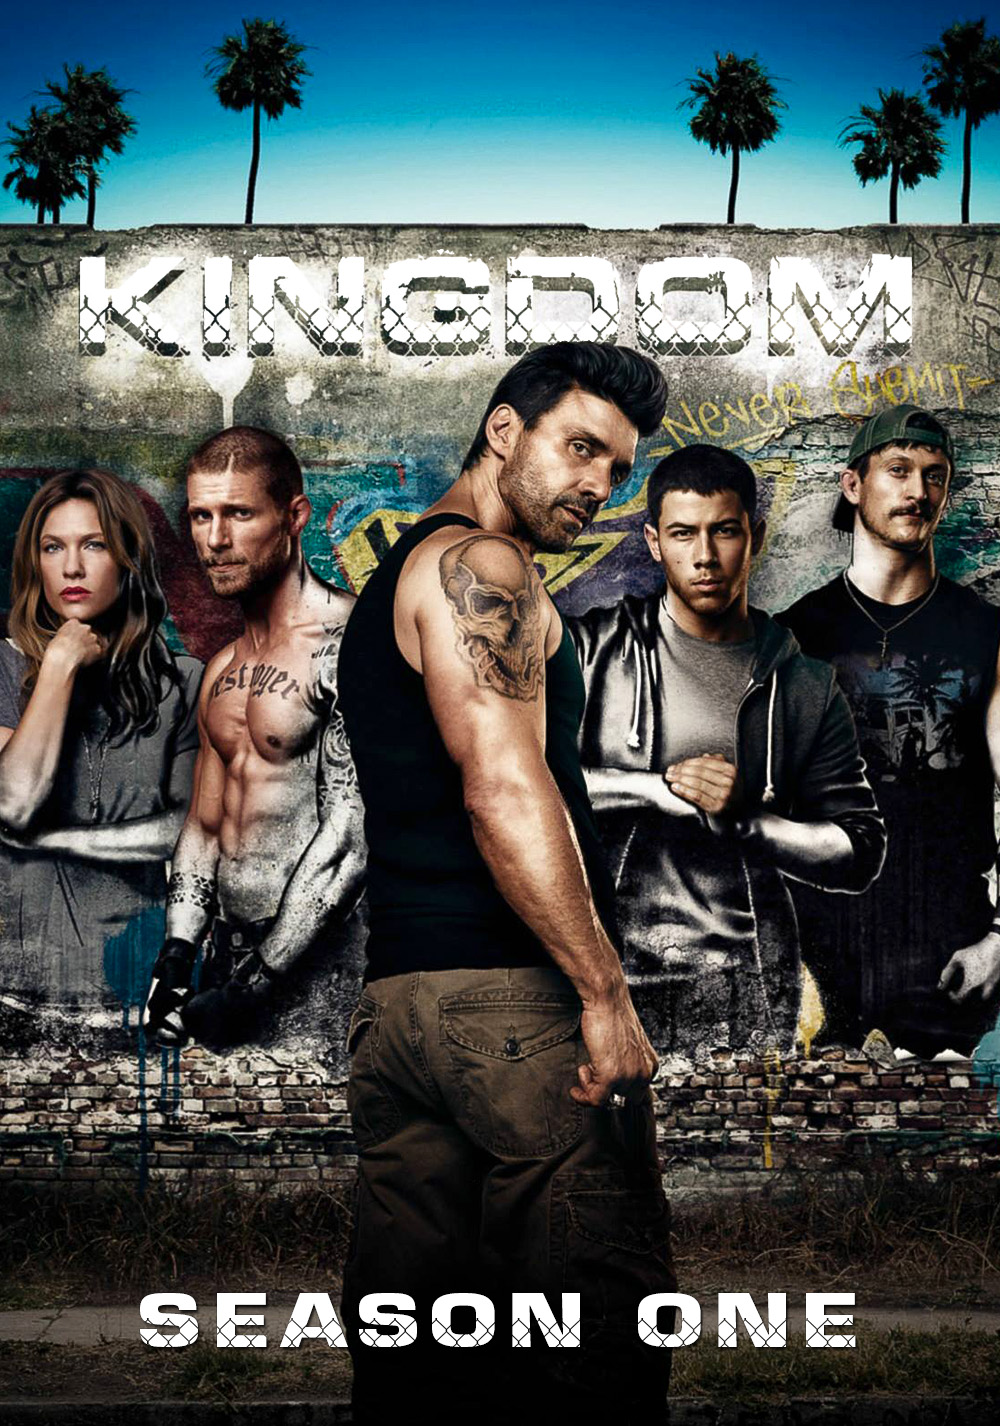 Kingdom (2014-2017) Tv series